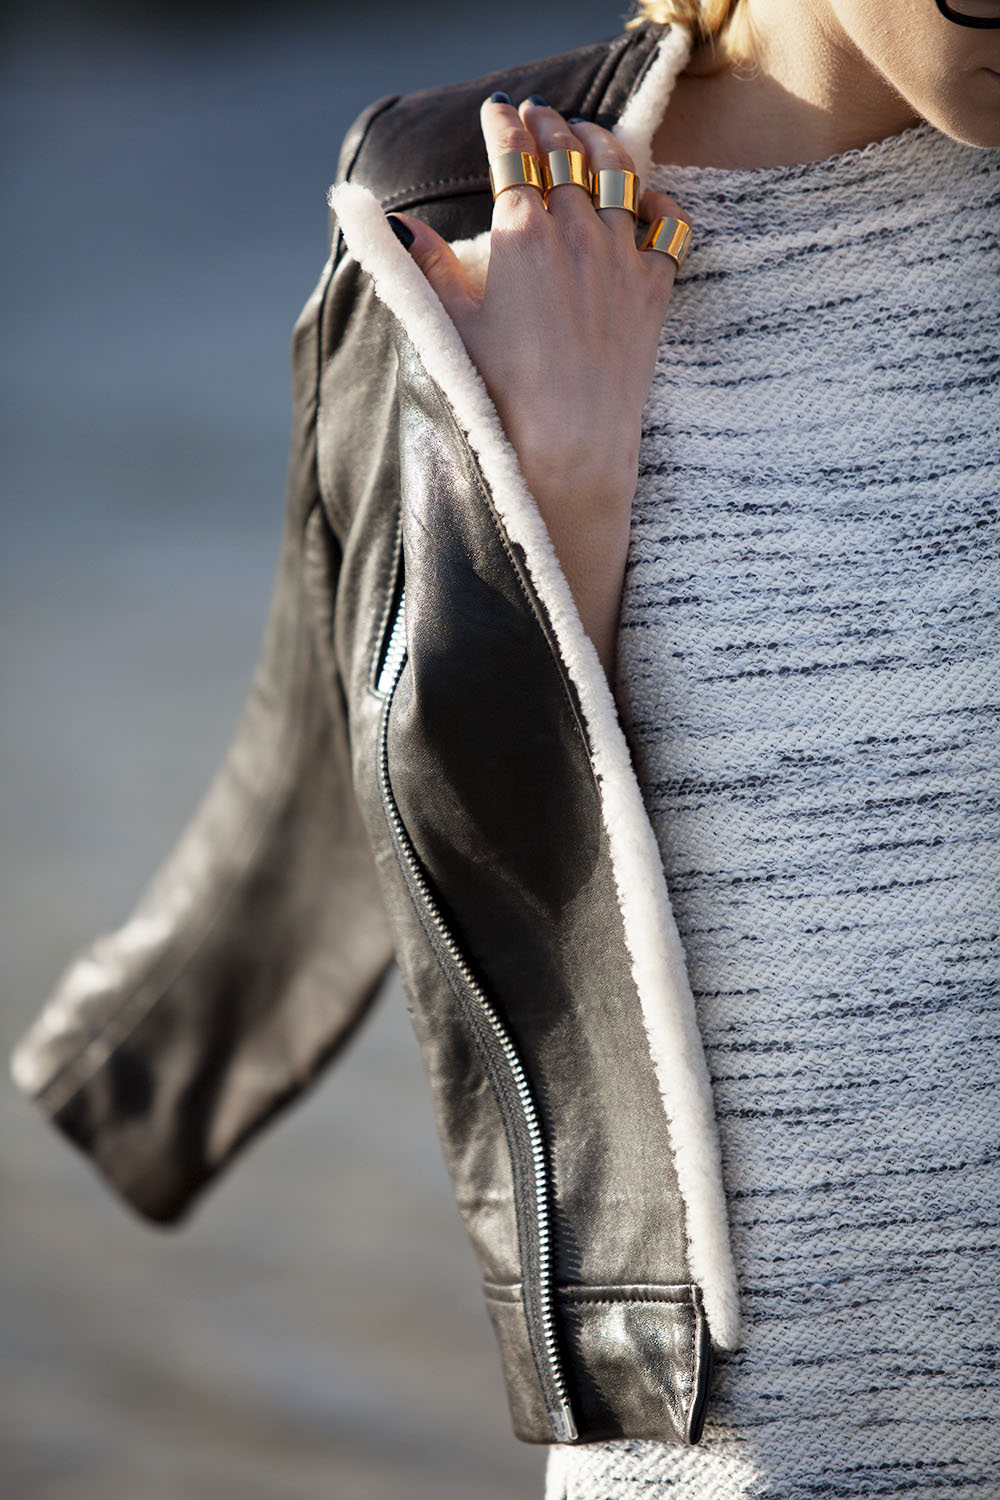 Luv_AJ_Gold_Cuff_Rings_leather jacket sweater